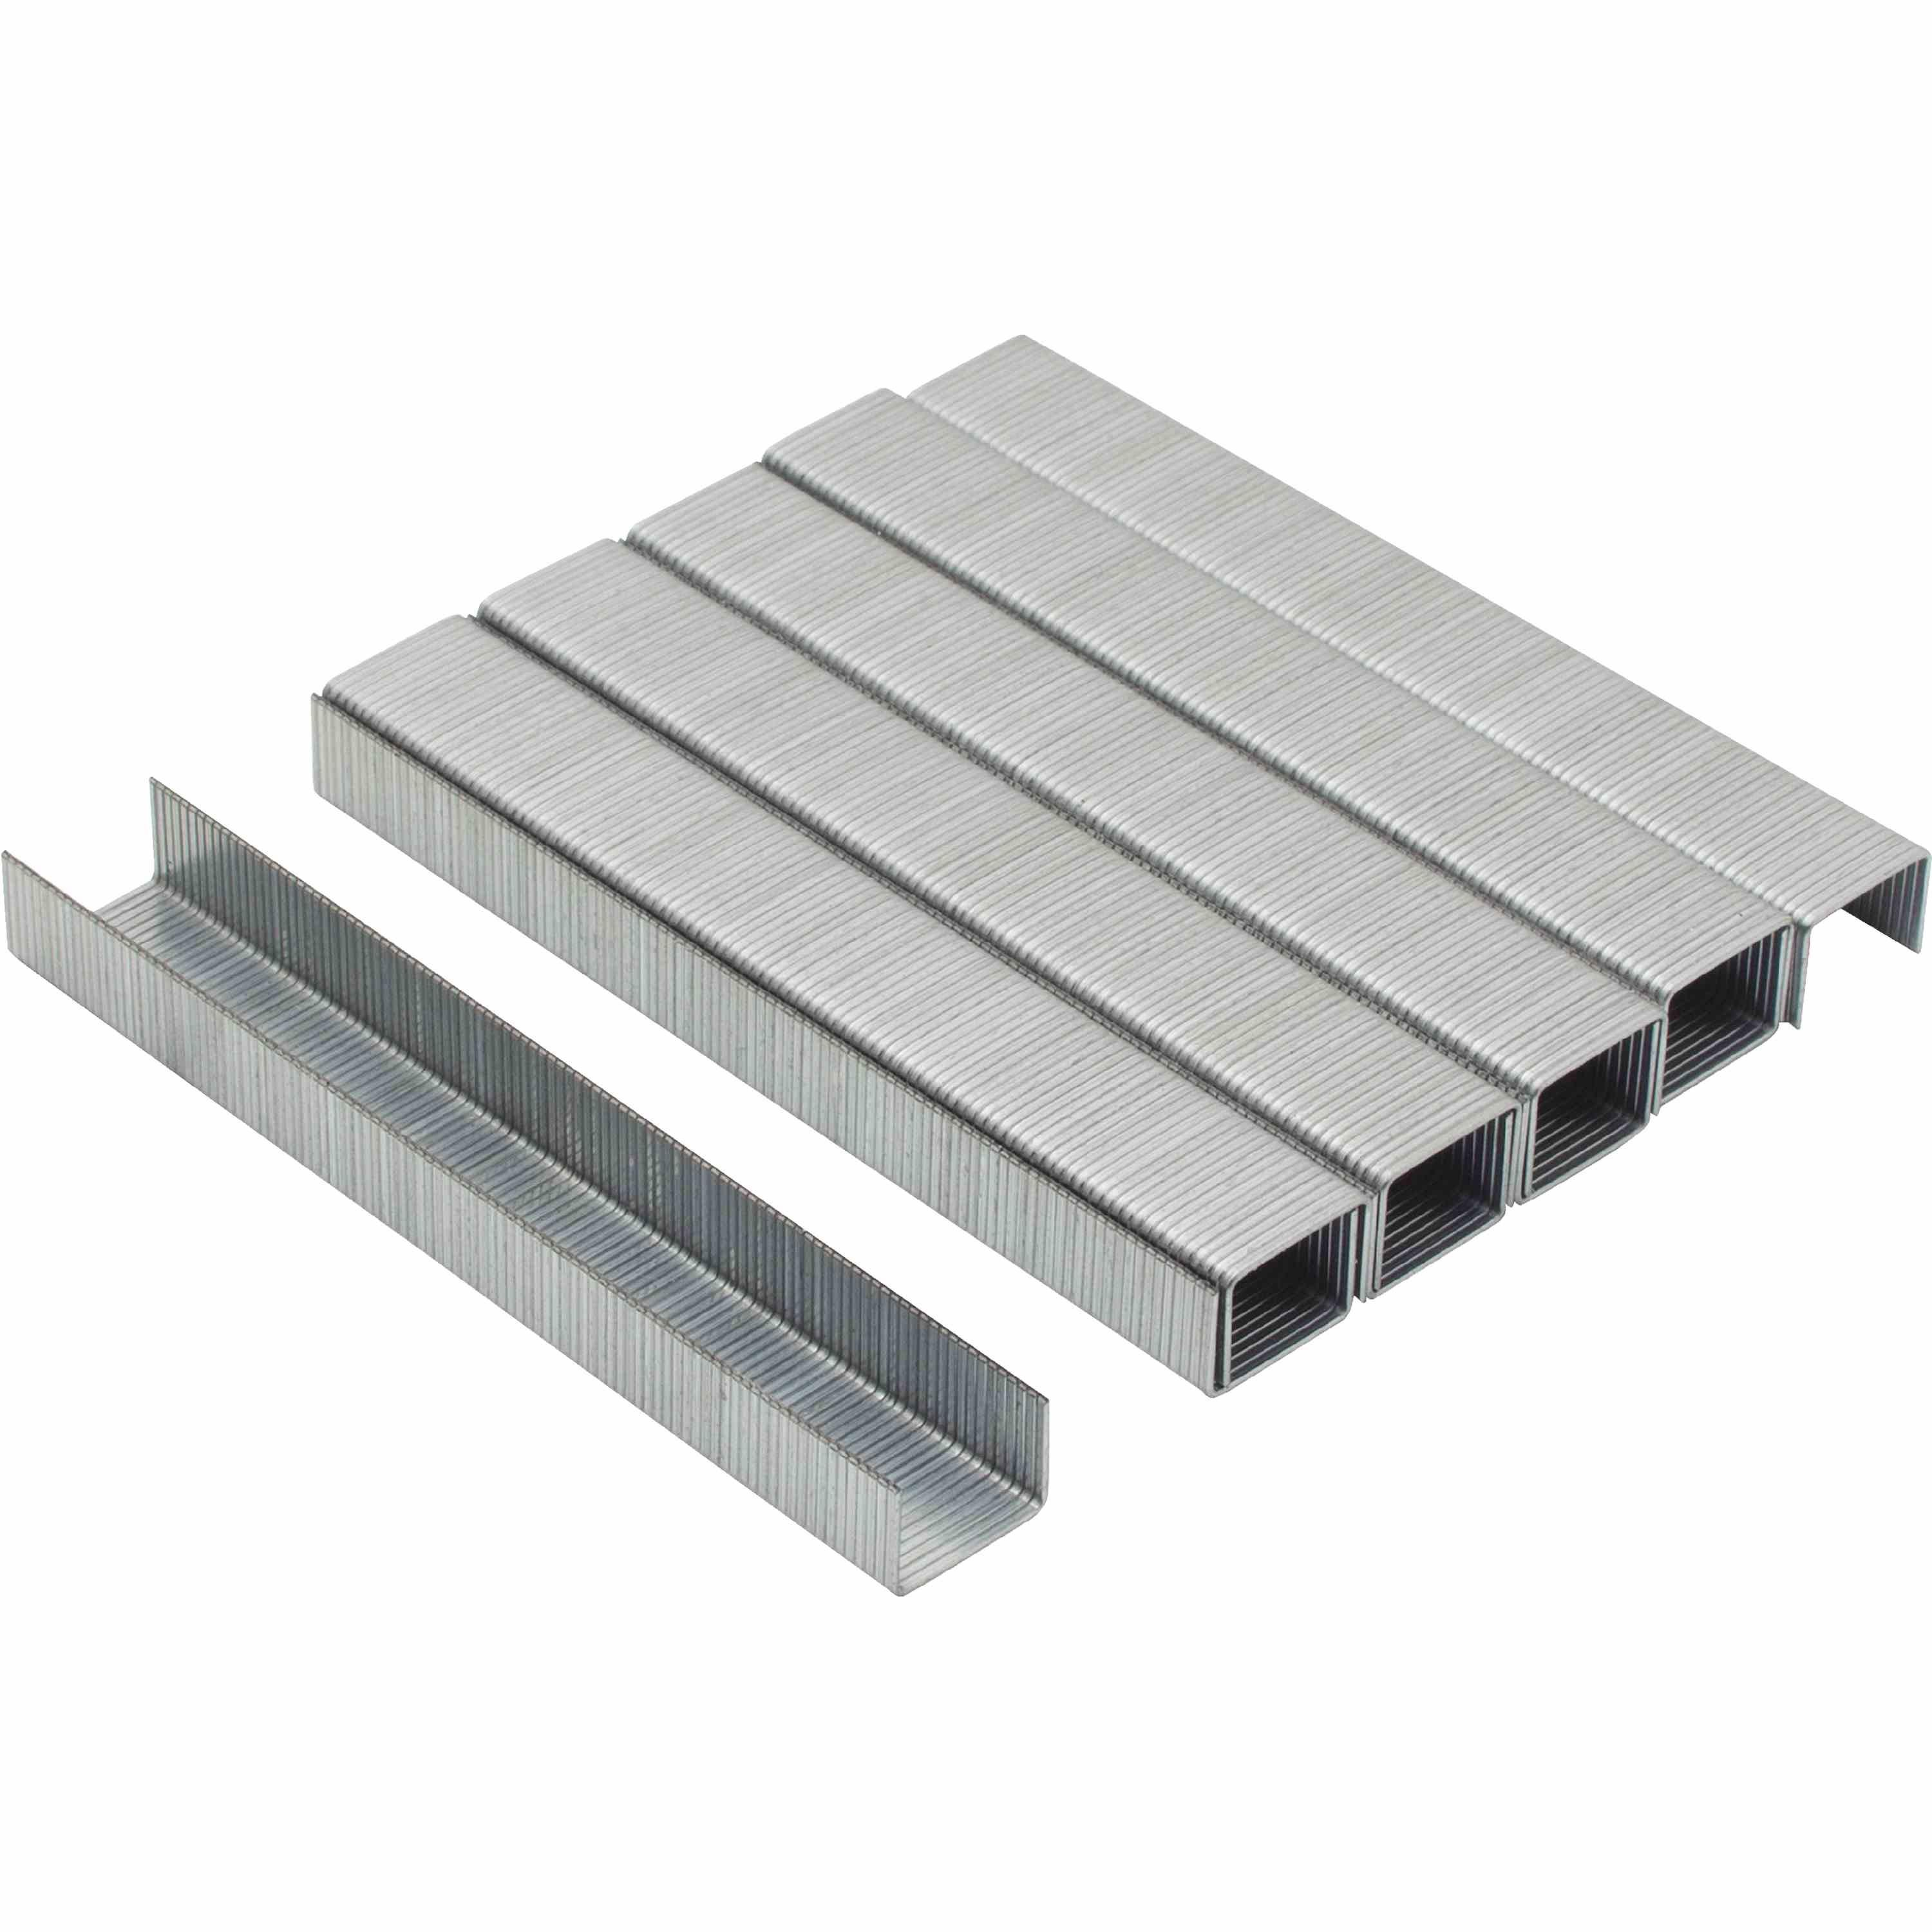 B8 STCR2115 Galvanized Office Staples for Office, School